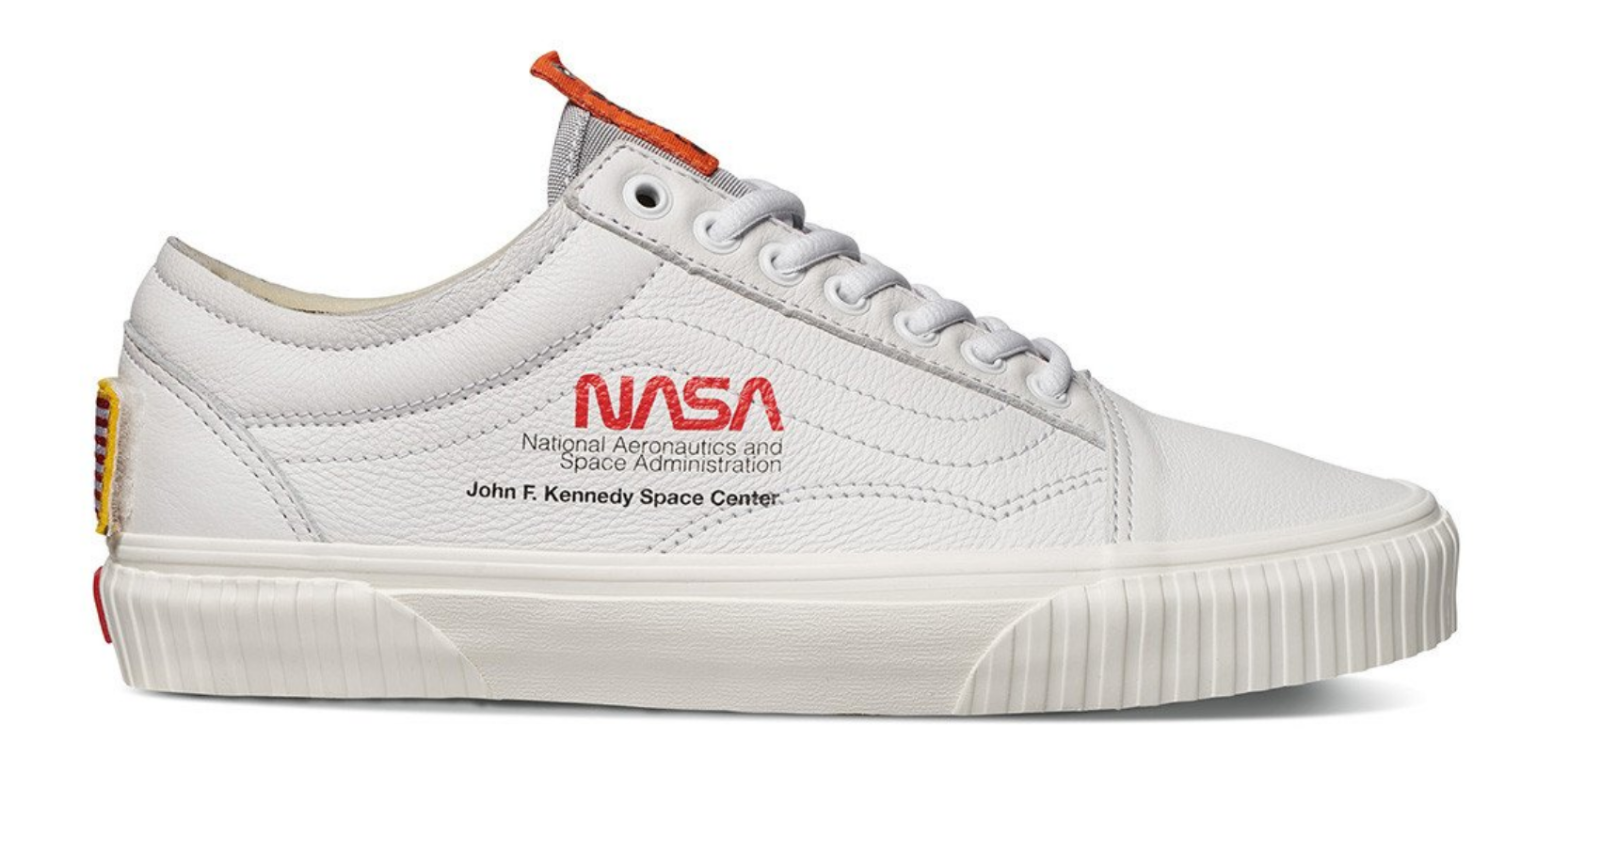 Vans Has Unveiled Their Radical NASA-Themed Collection  2362c6d08b7